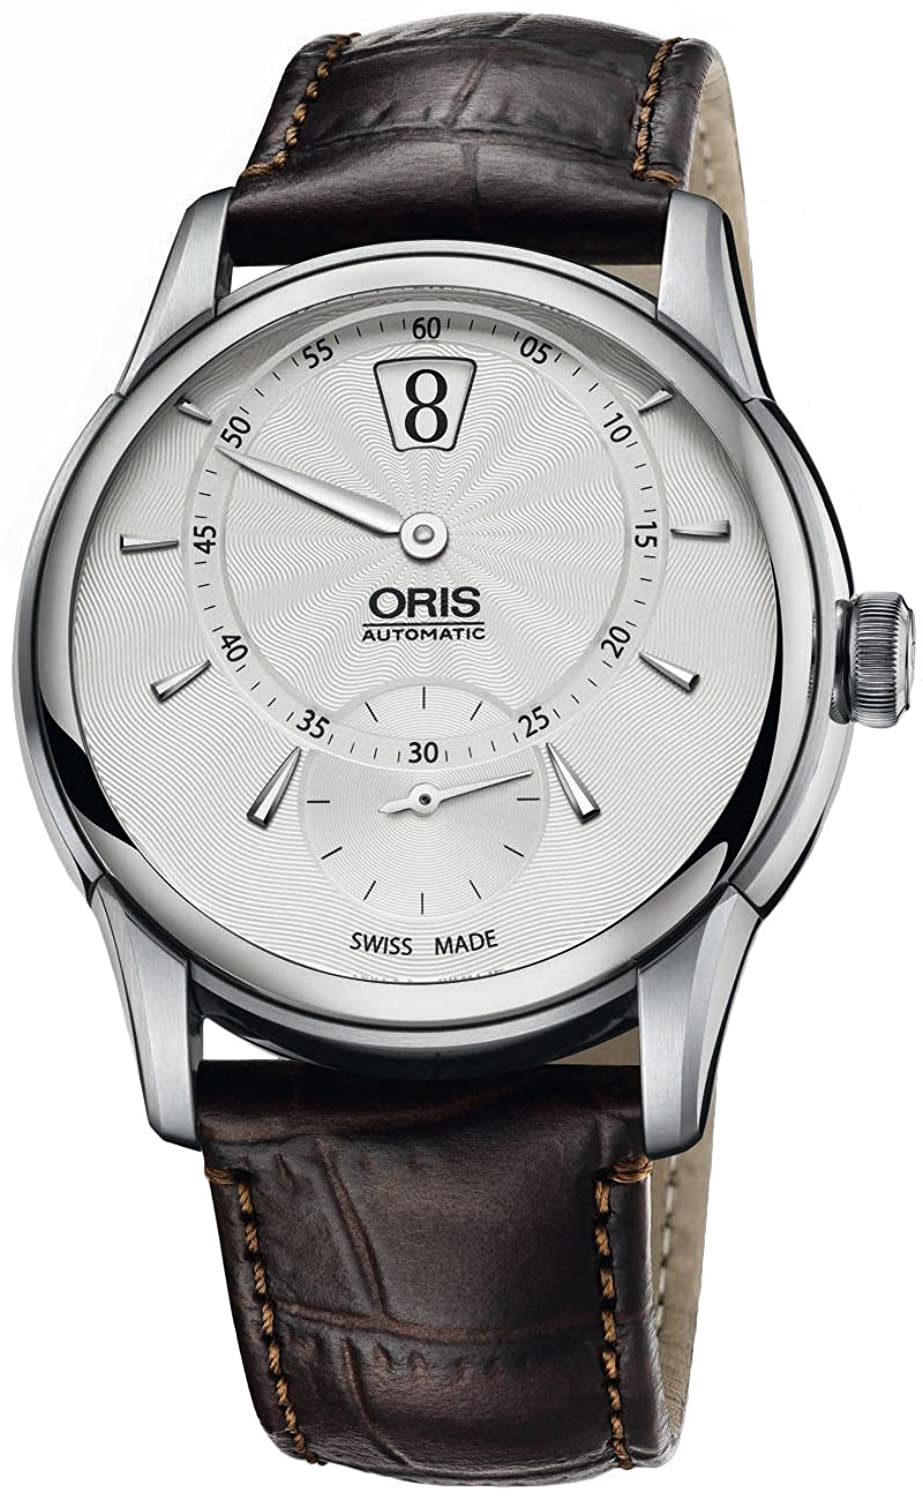 i five have diver and loved sixty was black but oris it new color watches liked if would blue my